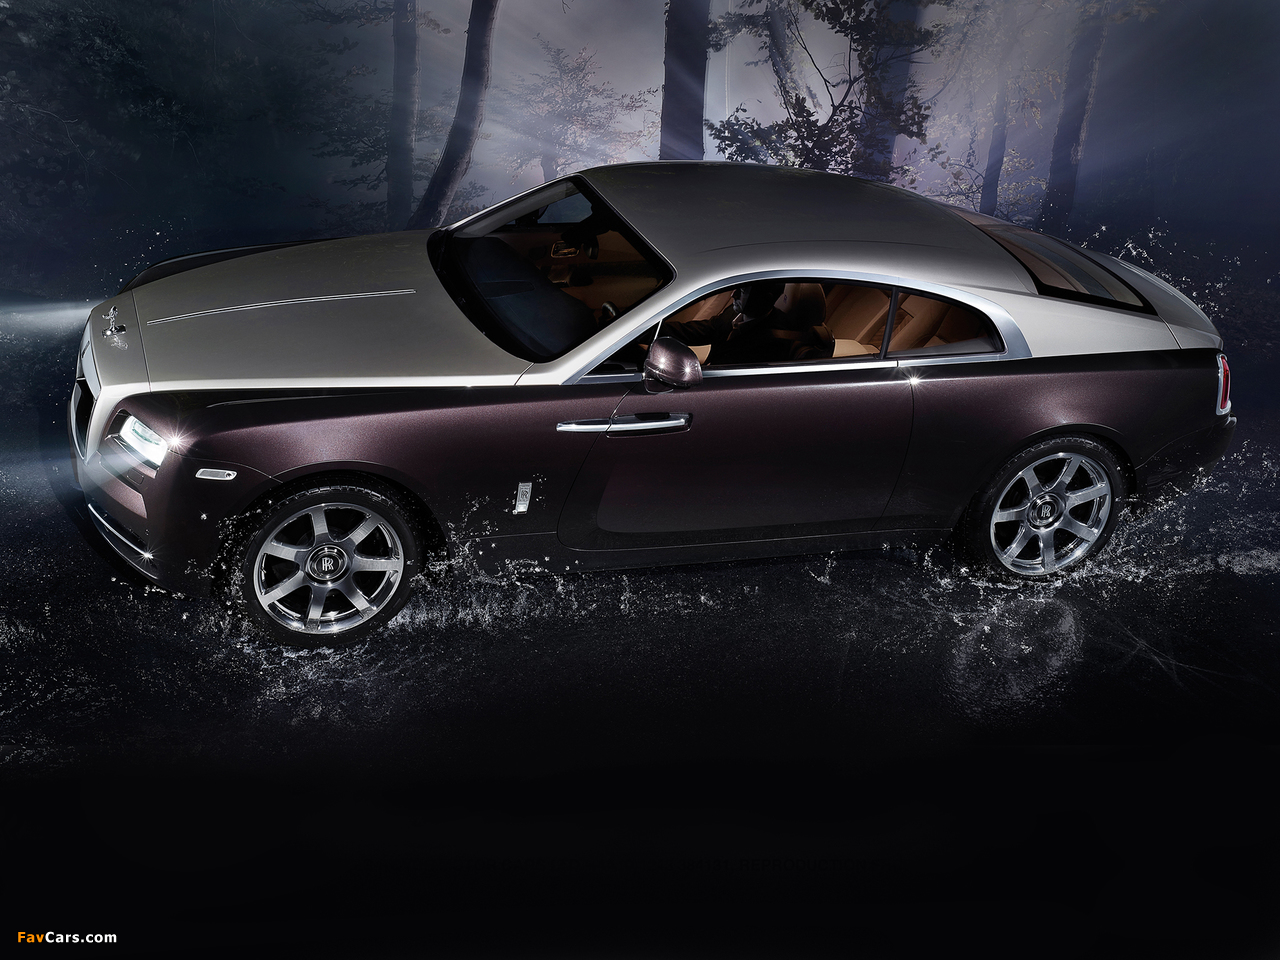 Images of Rolls-Royce Wraith 2013 (1280x960)